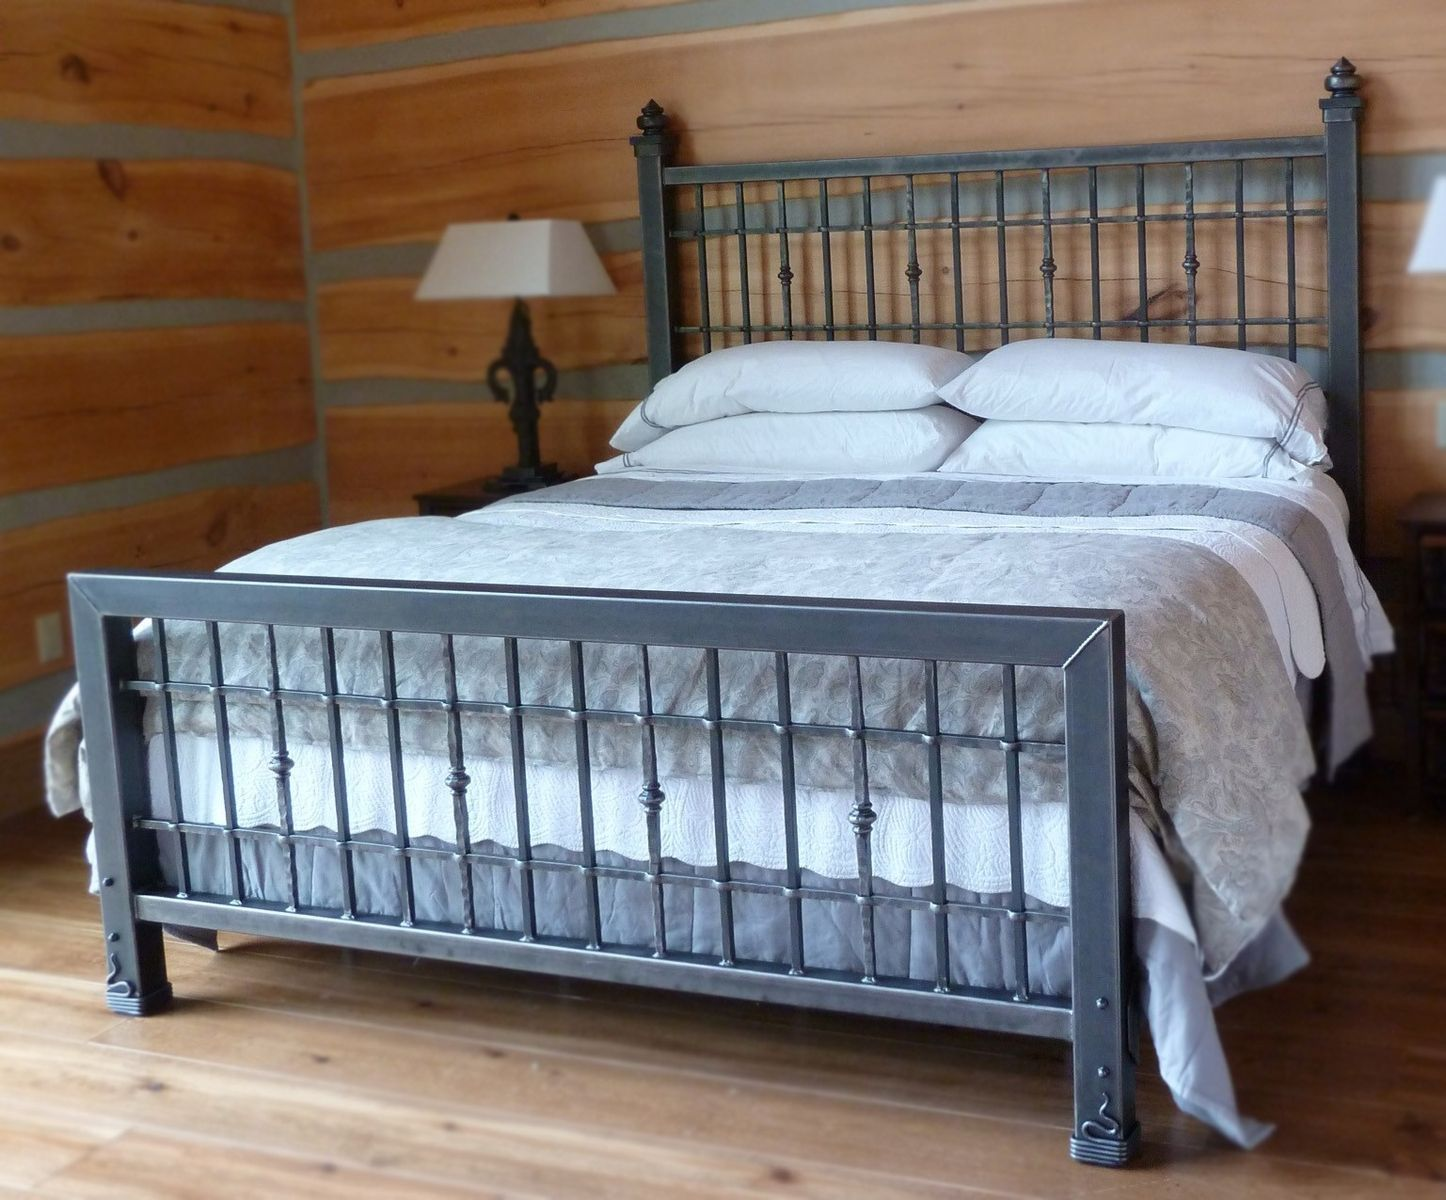 The Yucatan King Size Bed Comes Complete With Bed Frame Headboard And Footboard For An Elegant A King Size Metal Bed Frame Metal Beds Bed Frame And Headboard